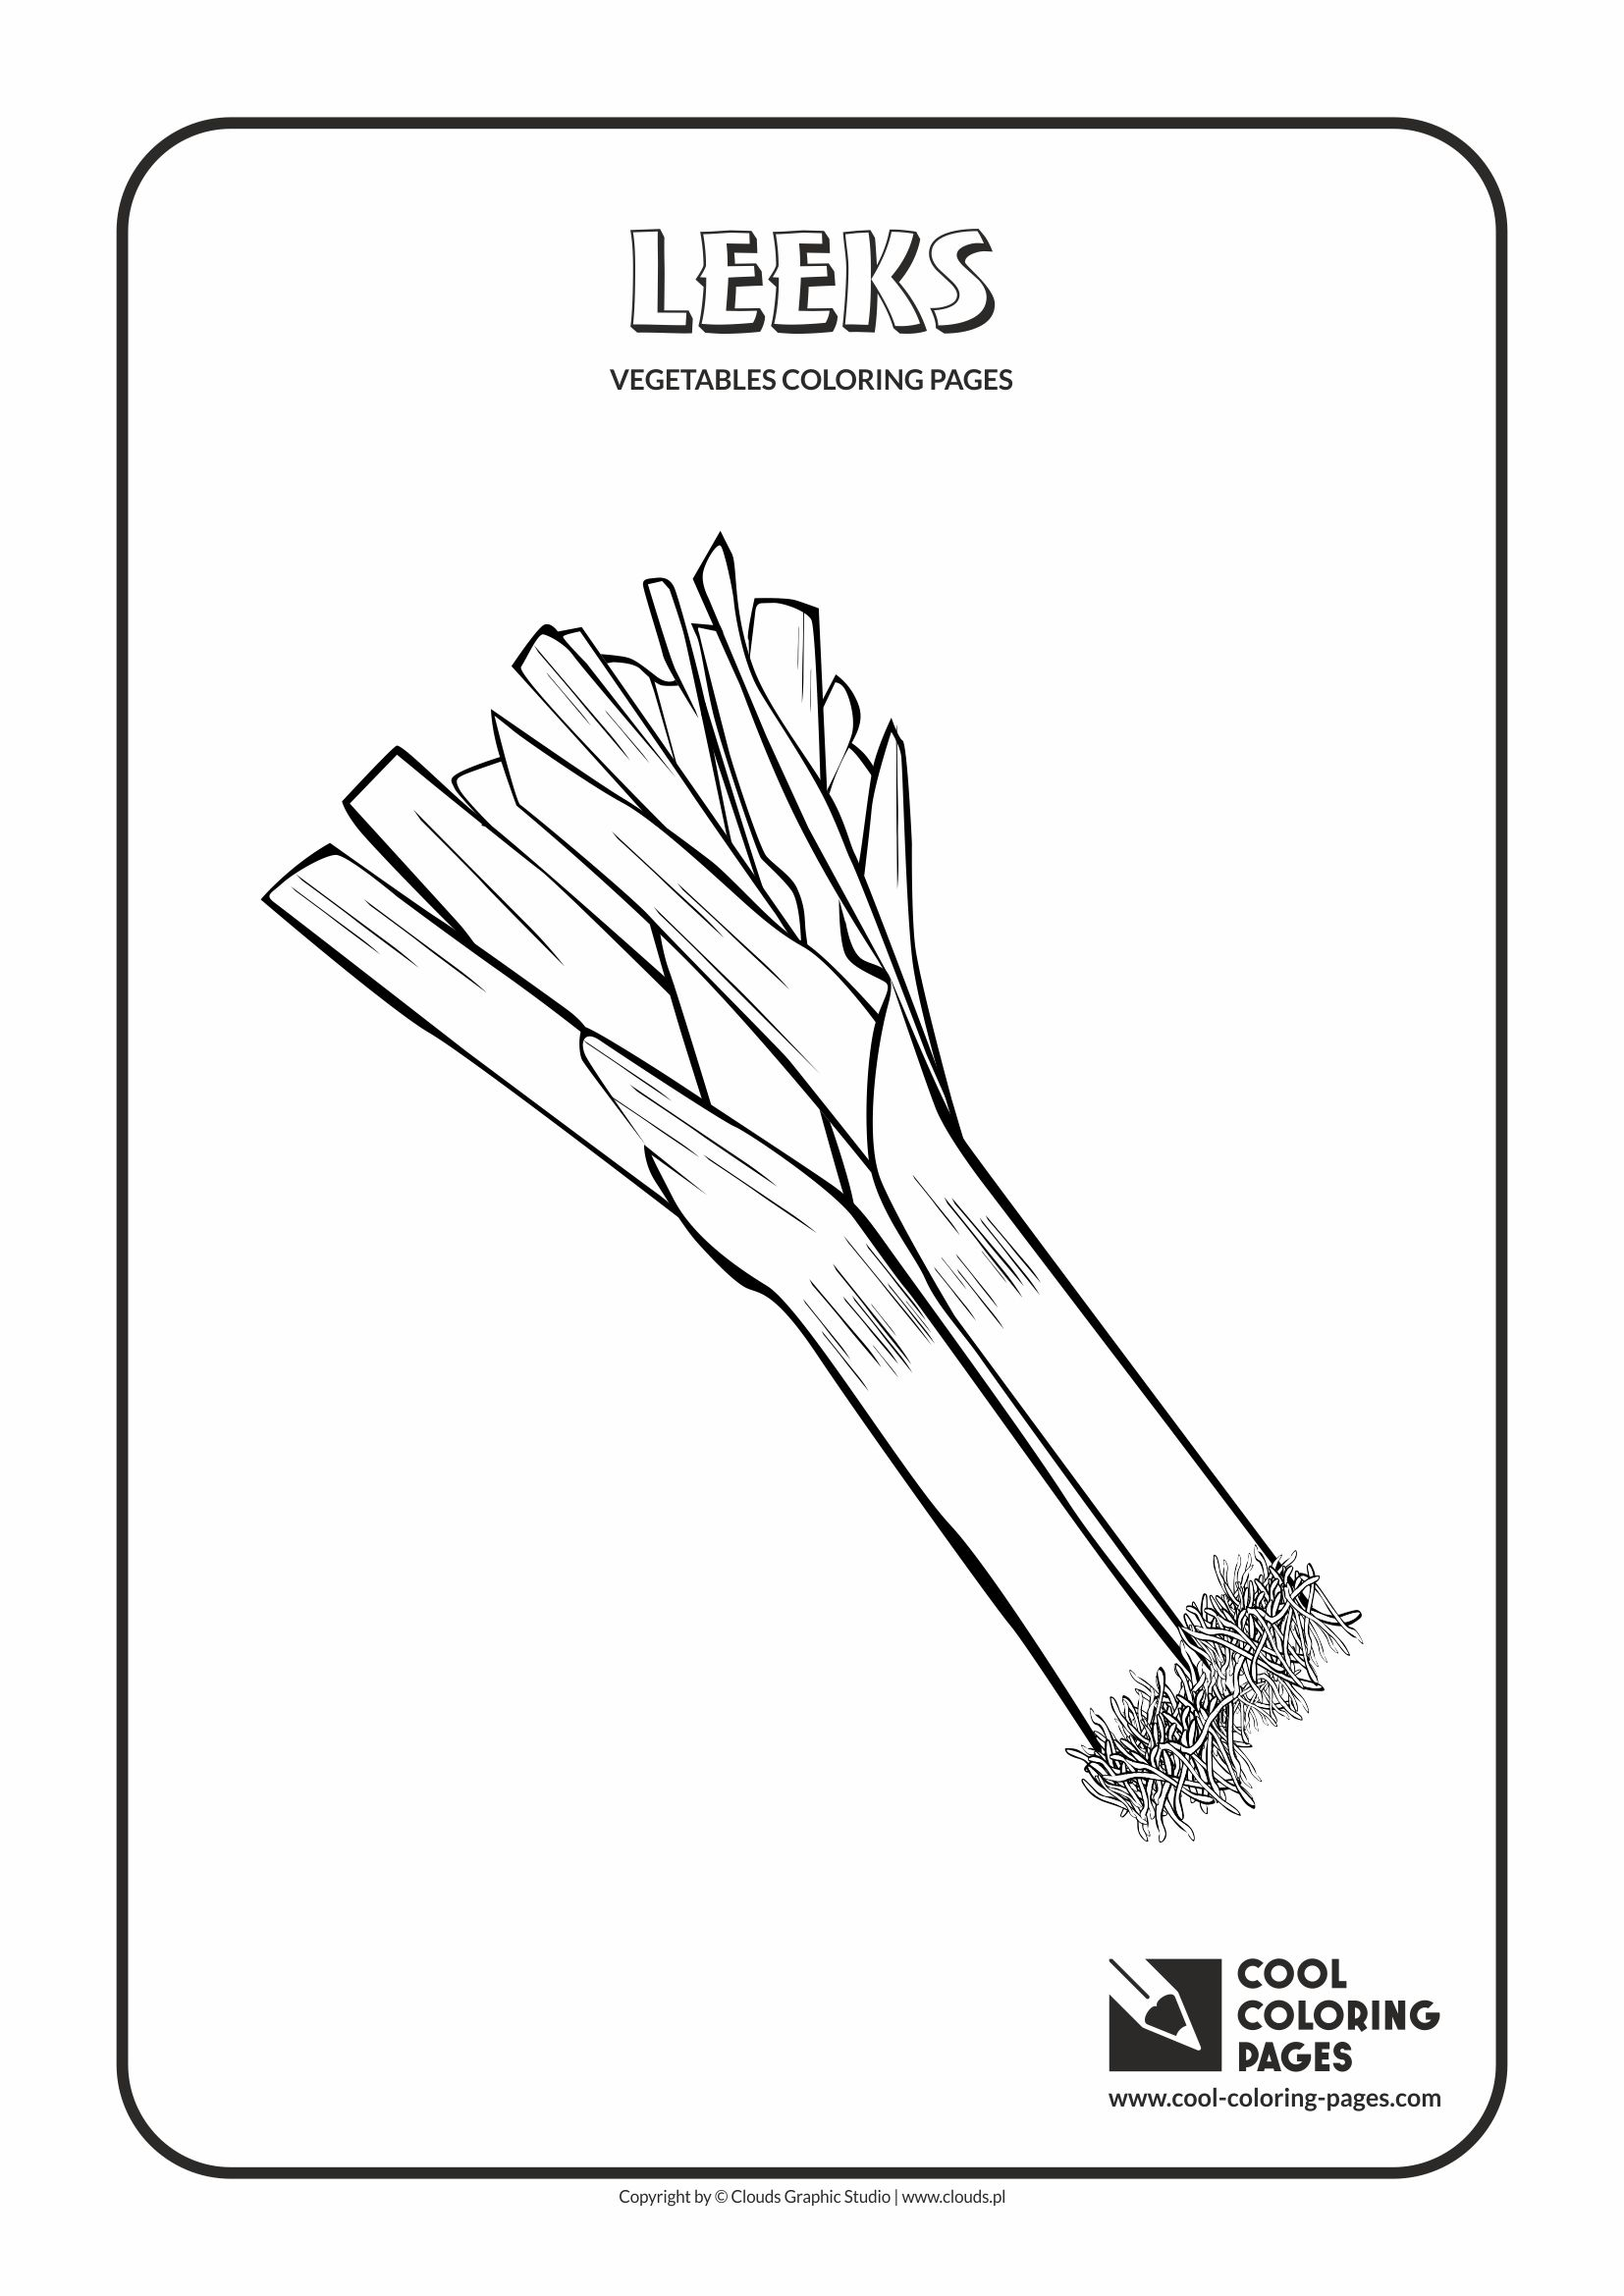 leeks coloring page cool coloring pages